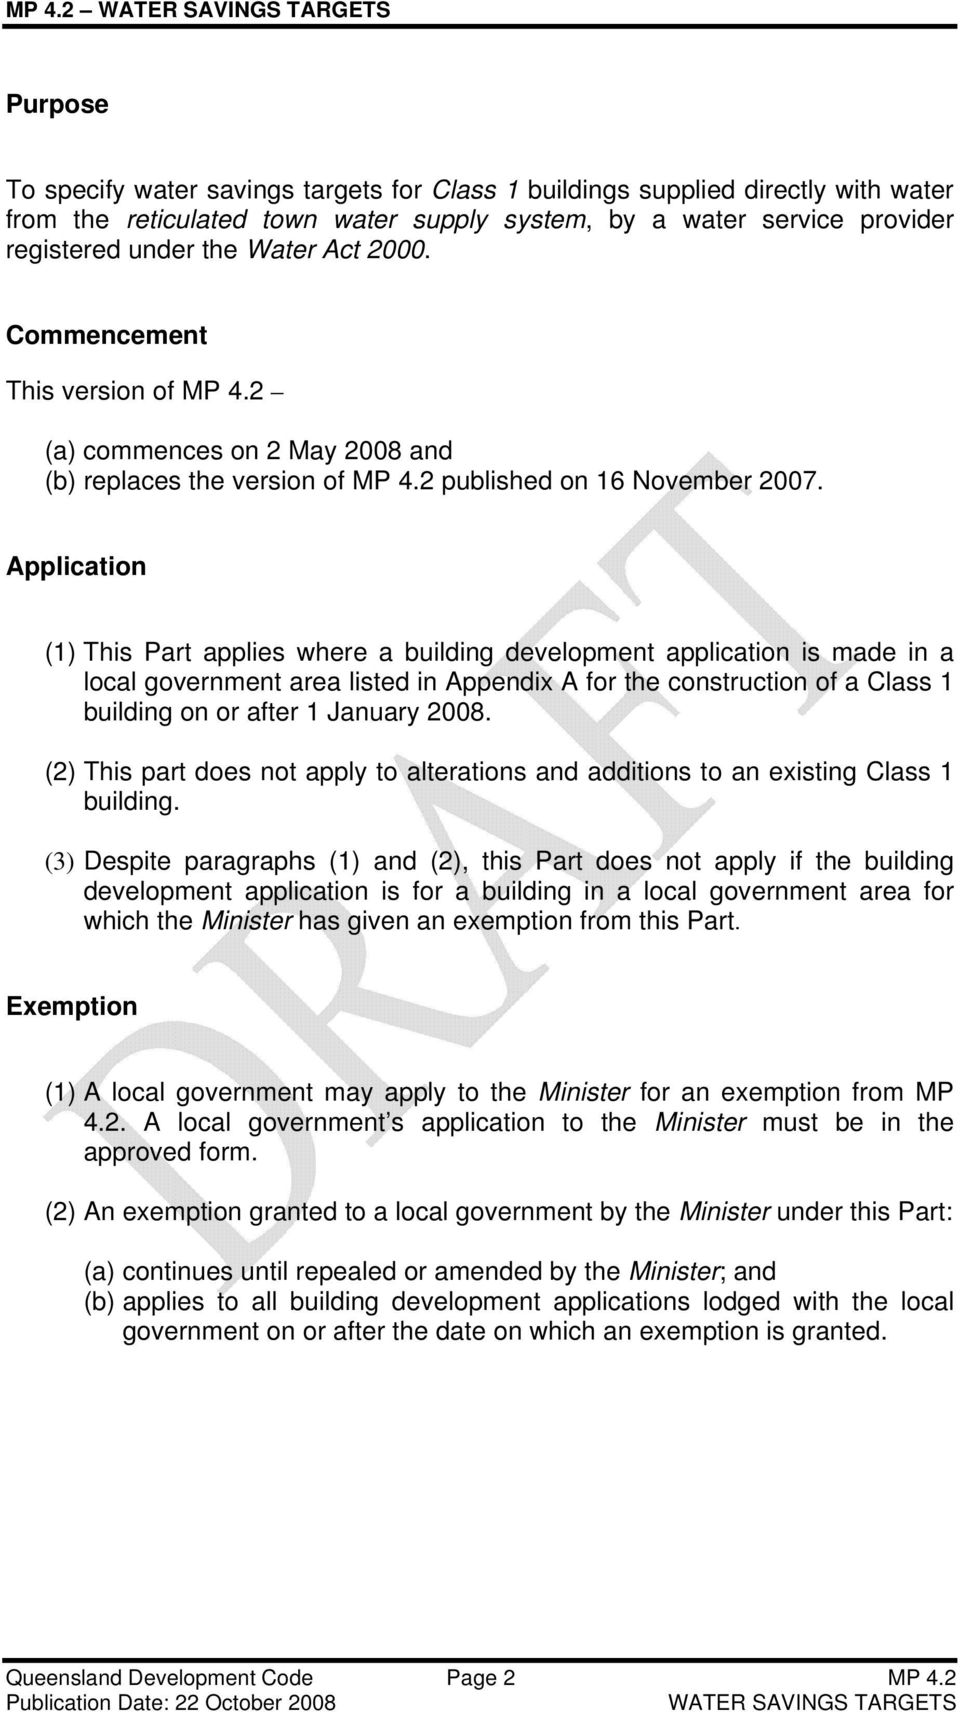 Application (1) This Part applies where a building development application is made in a local government area listed in Appendix A for the construction of a Class 1 building on or after 1 January